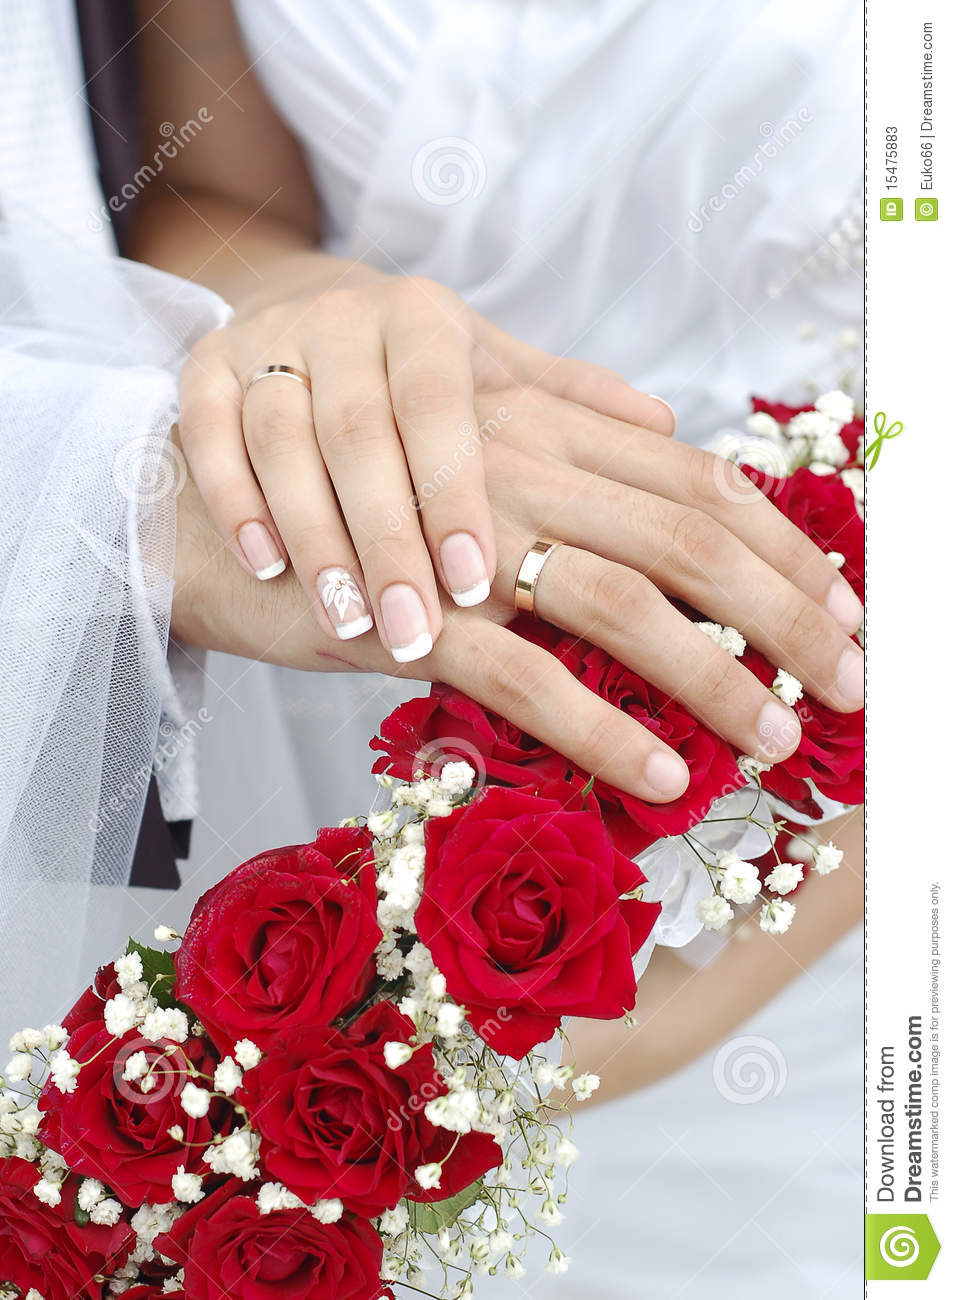 Wedding Gifts For Relatives : Bridal Groom Wedding Hands On Bouquet Stock PhotosImage: 15475883